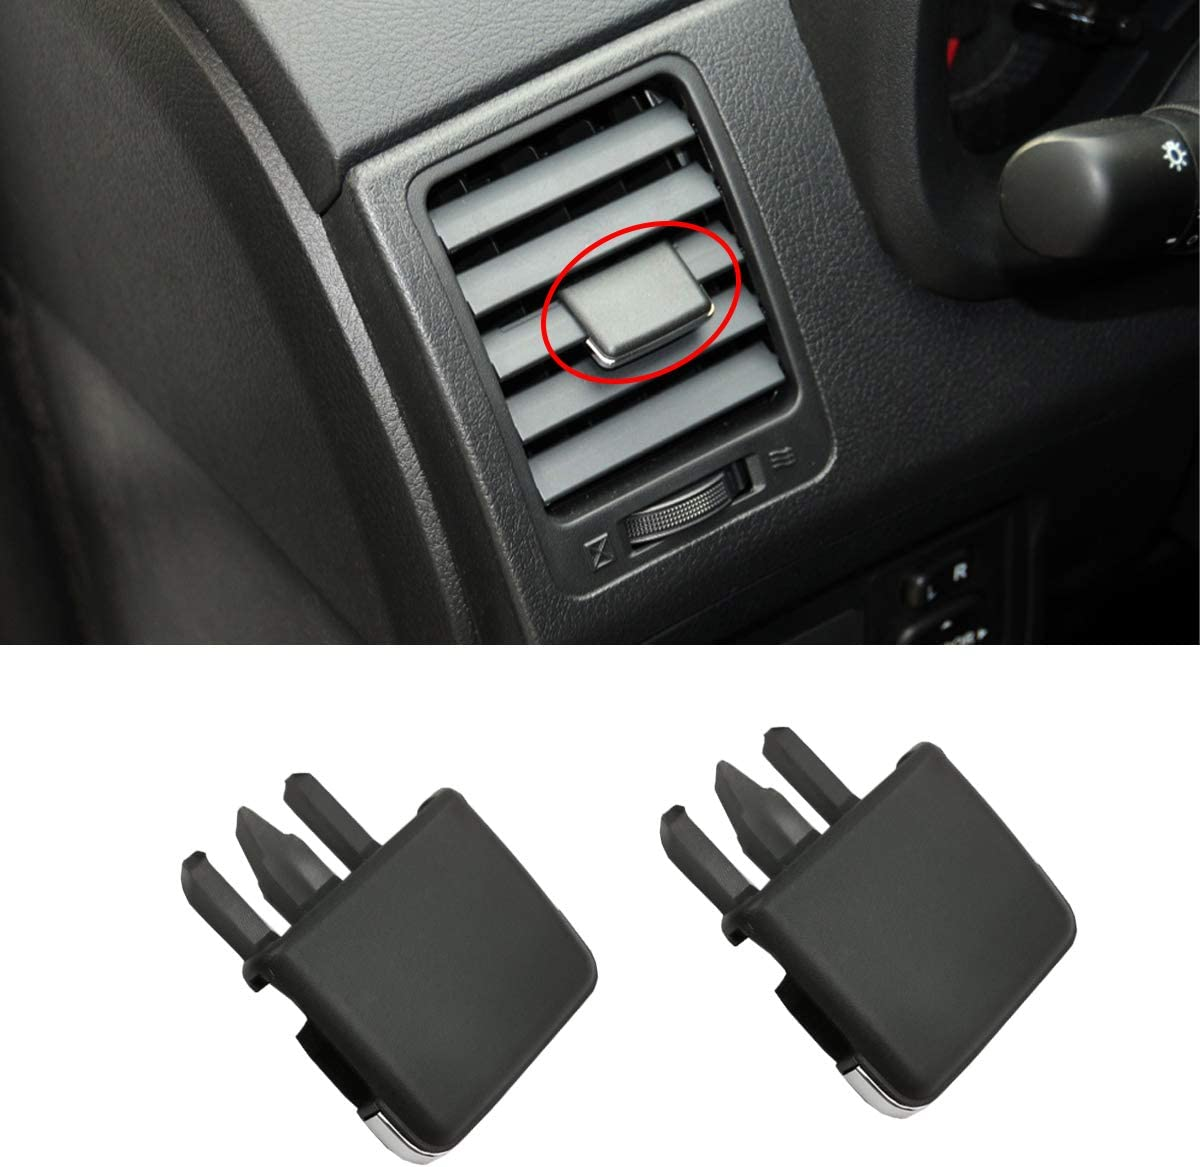 Front AC Vent Adjustment Buckle Repair Kit for Toyota Corolla 2009-2013 Moonlinks for Toyota Corolla Left and Right Side Air Vent Outlet Tab Clips Set of 2,Black